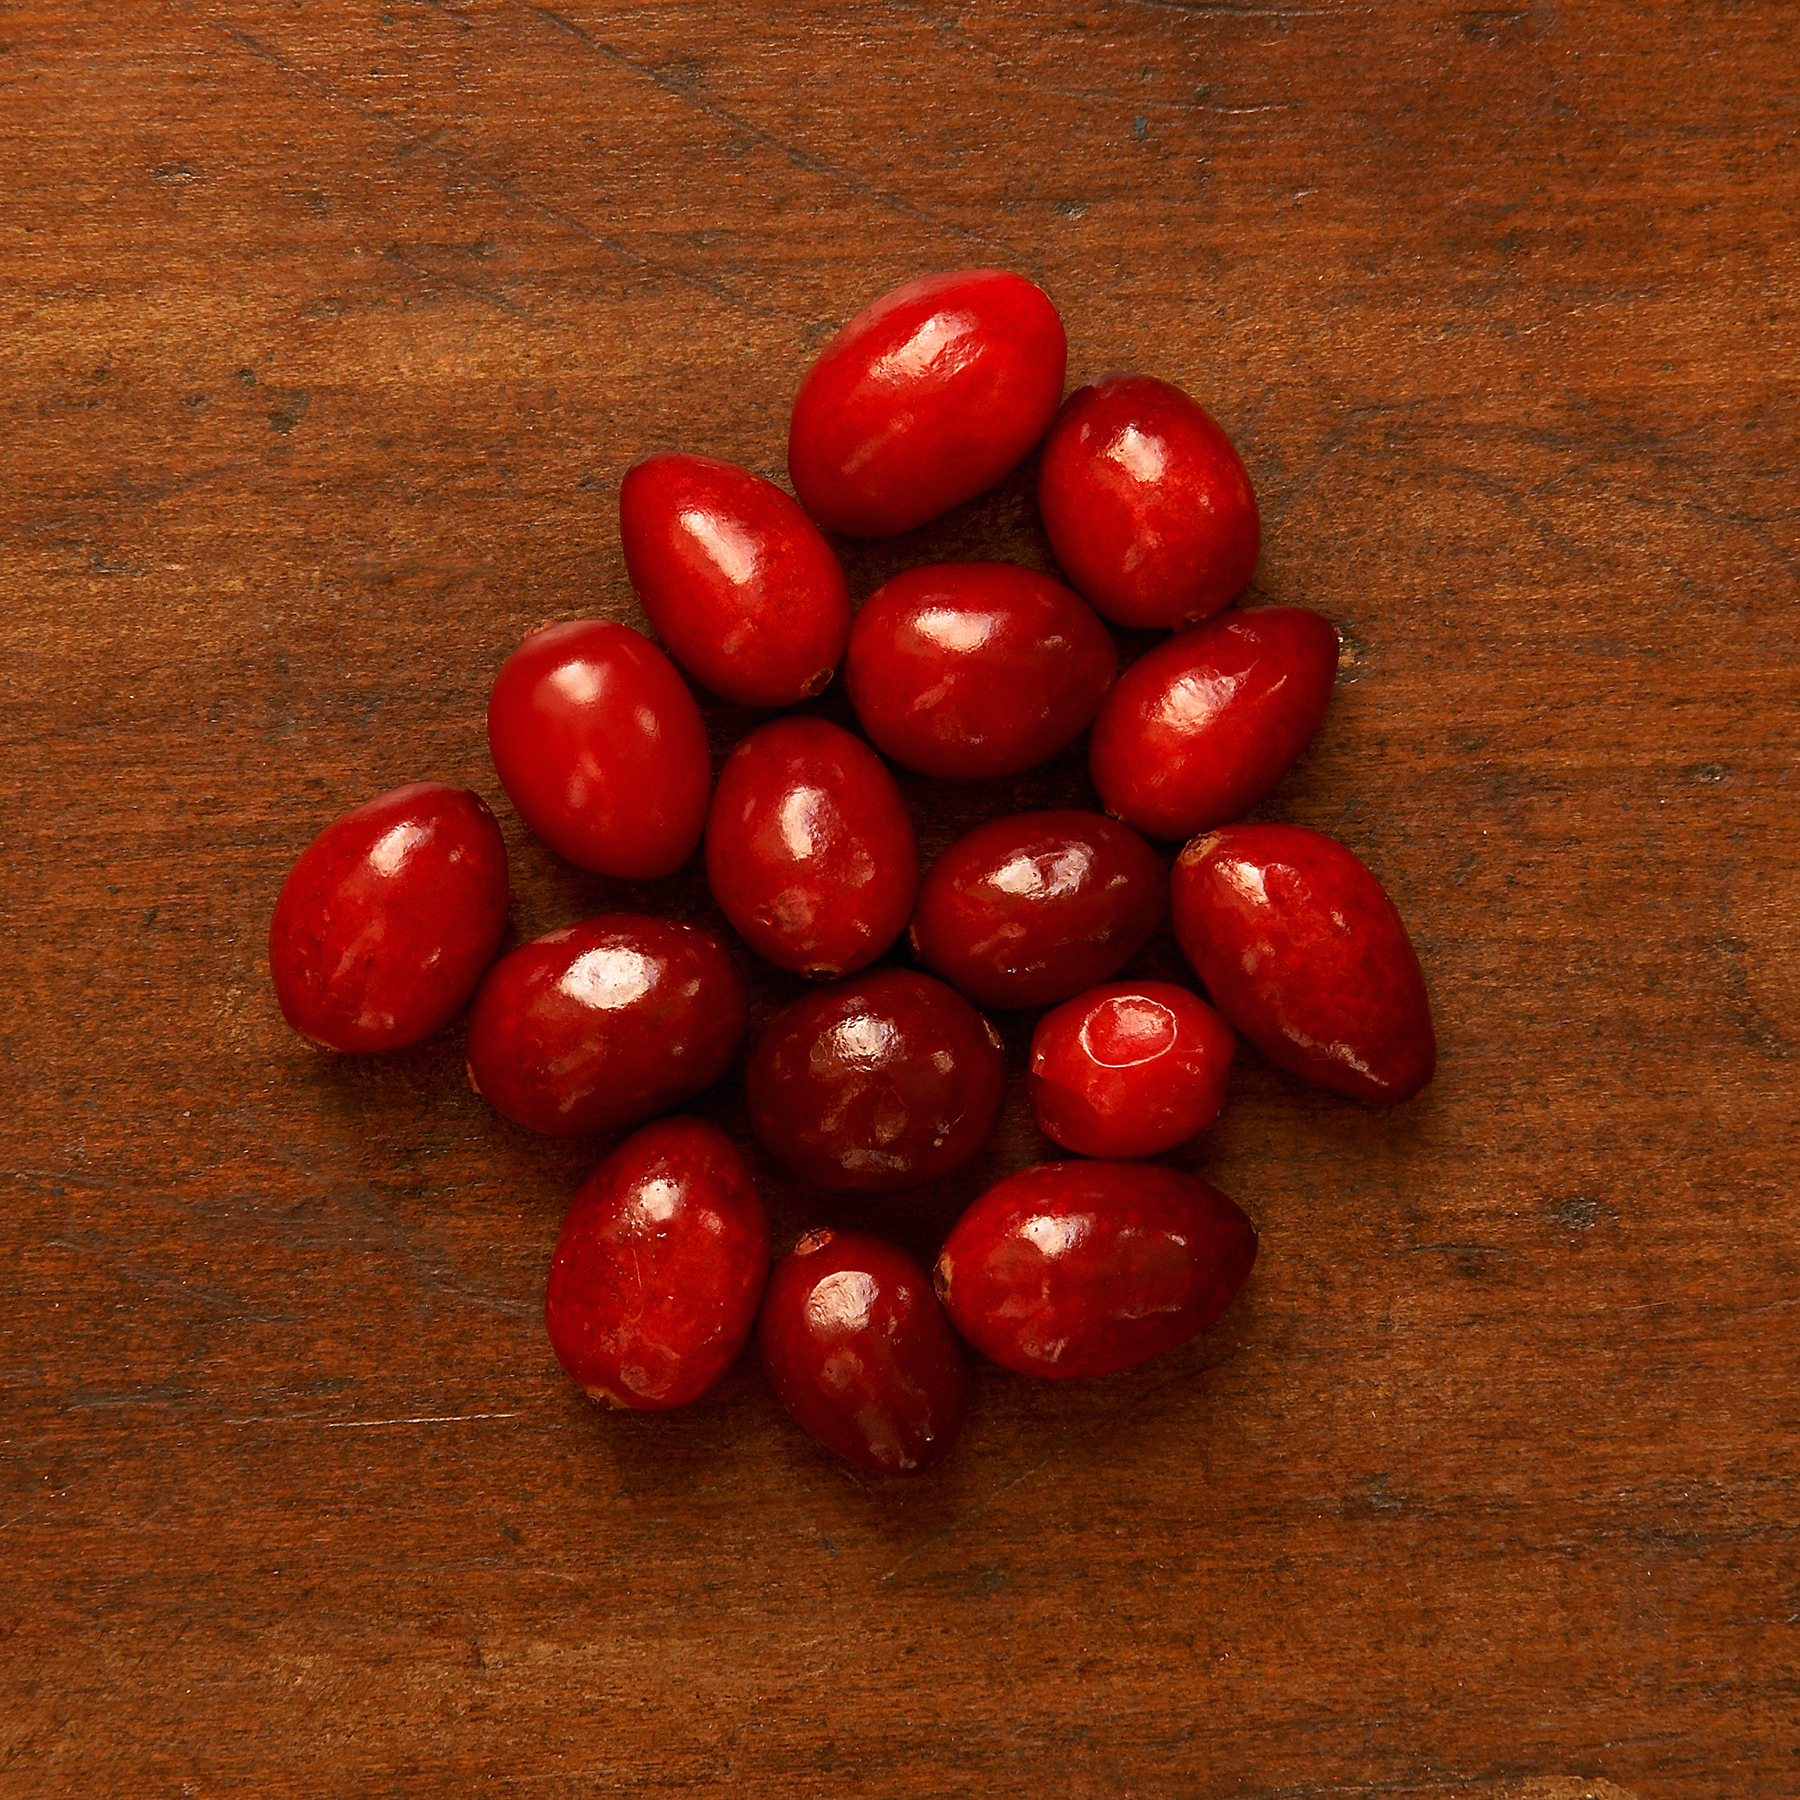 CRANBERRIES-ON-WOOD-ORGANIC-FOOD-©-JONATHAN-R.-BECKERMAN-PHOTOTGRAPHY.jpg